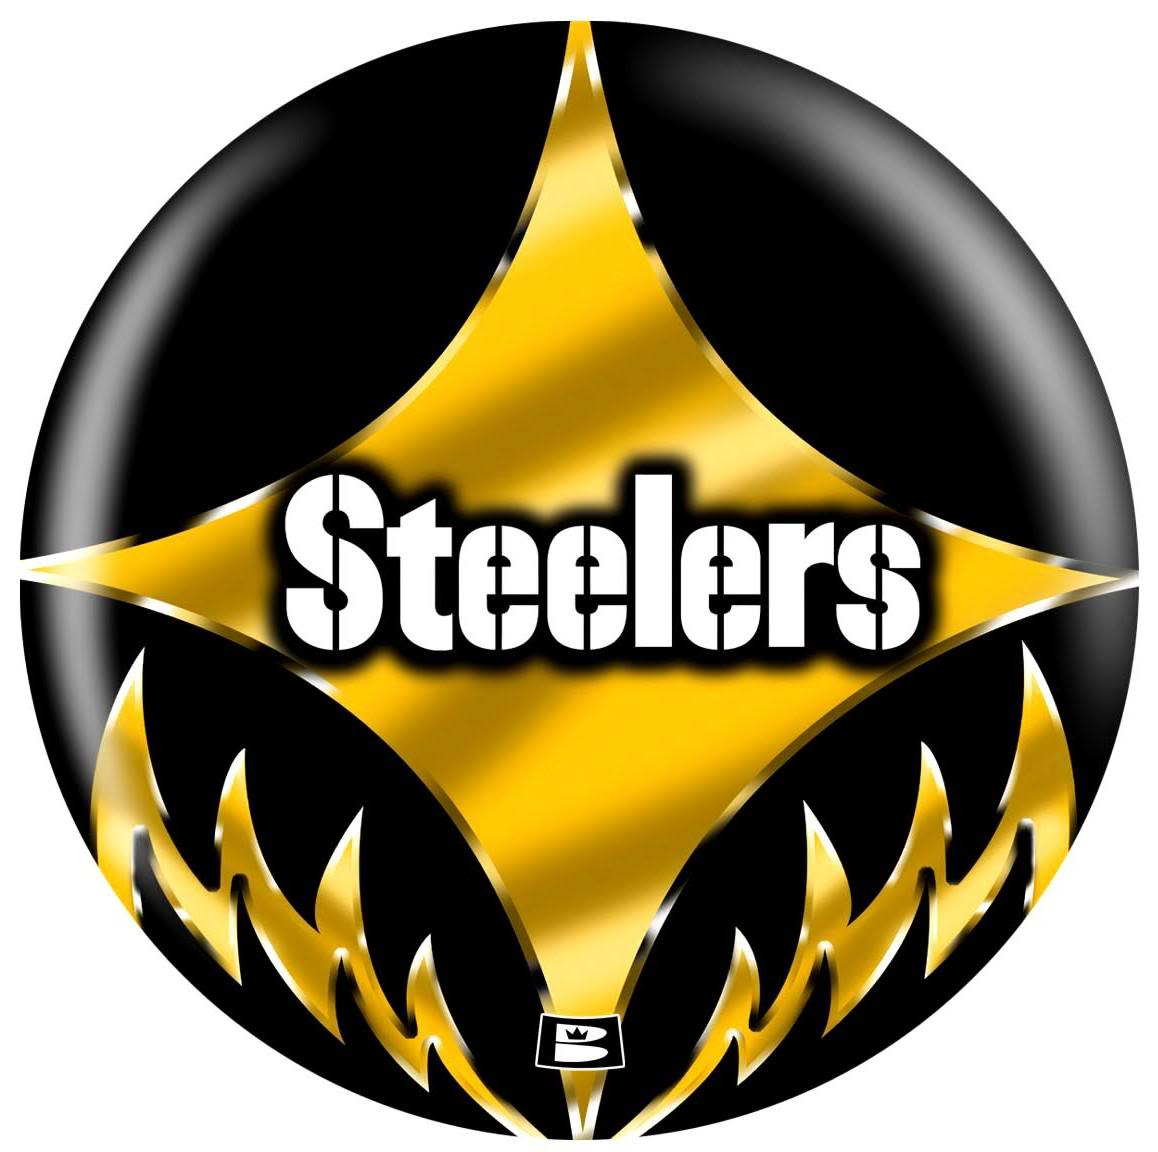 Steelers Clip Art Logo   Clipart Panda - Free Clipart Images